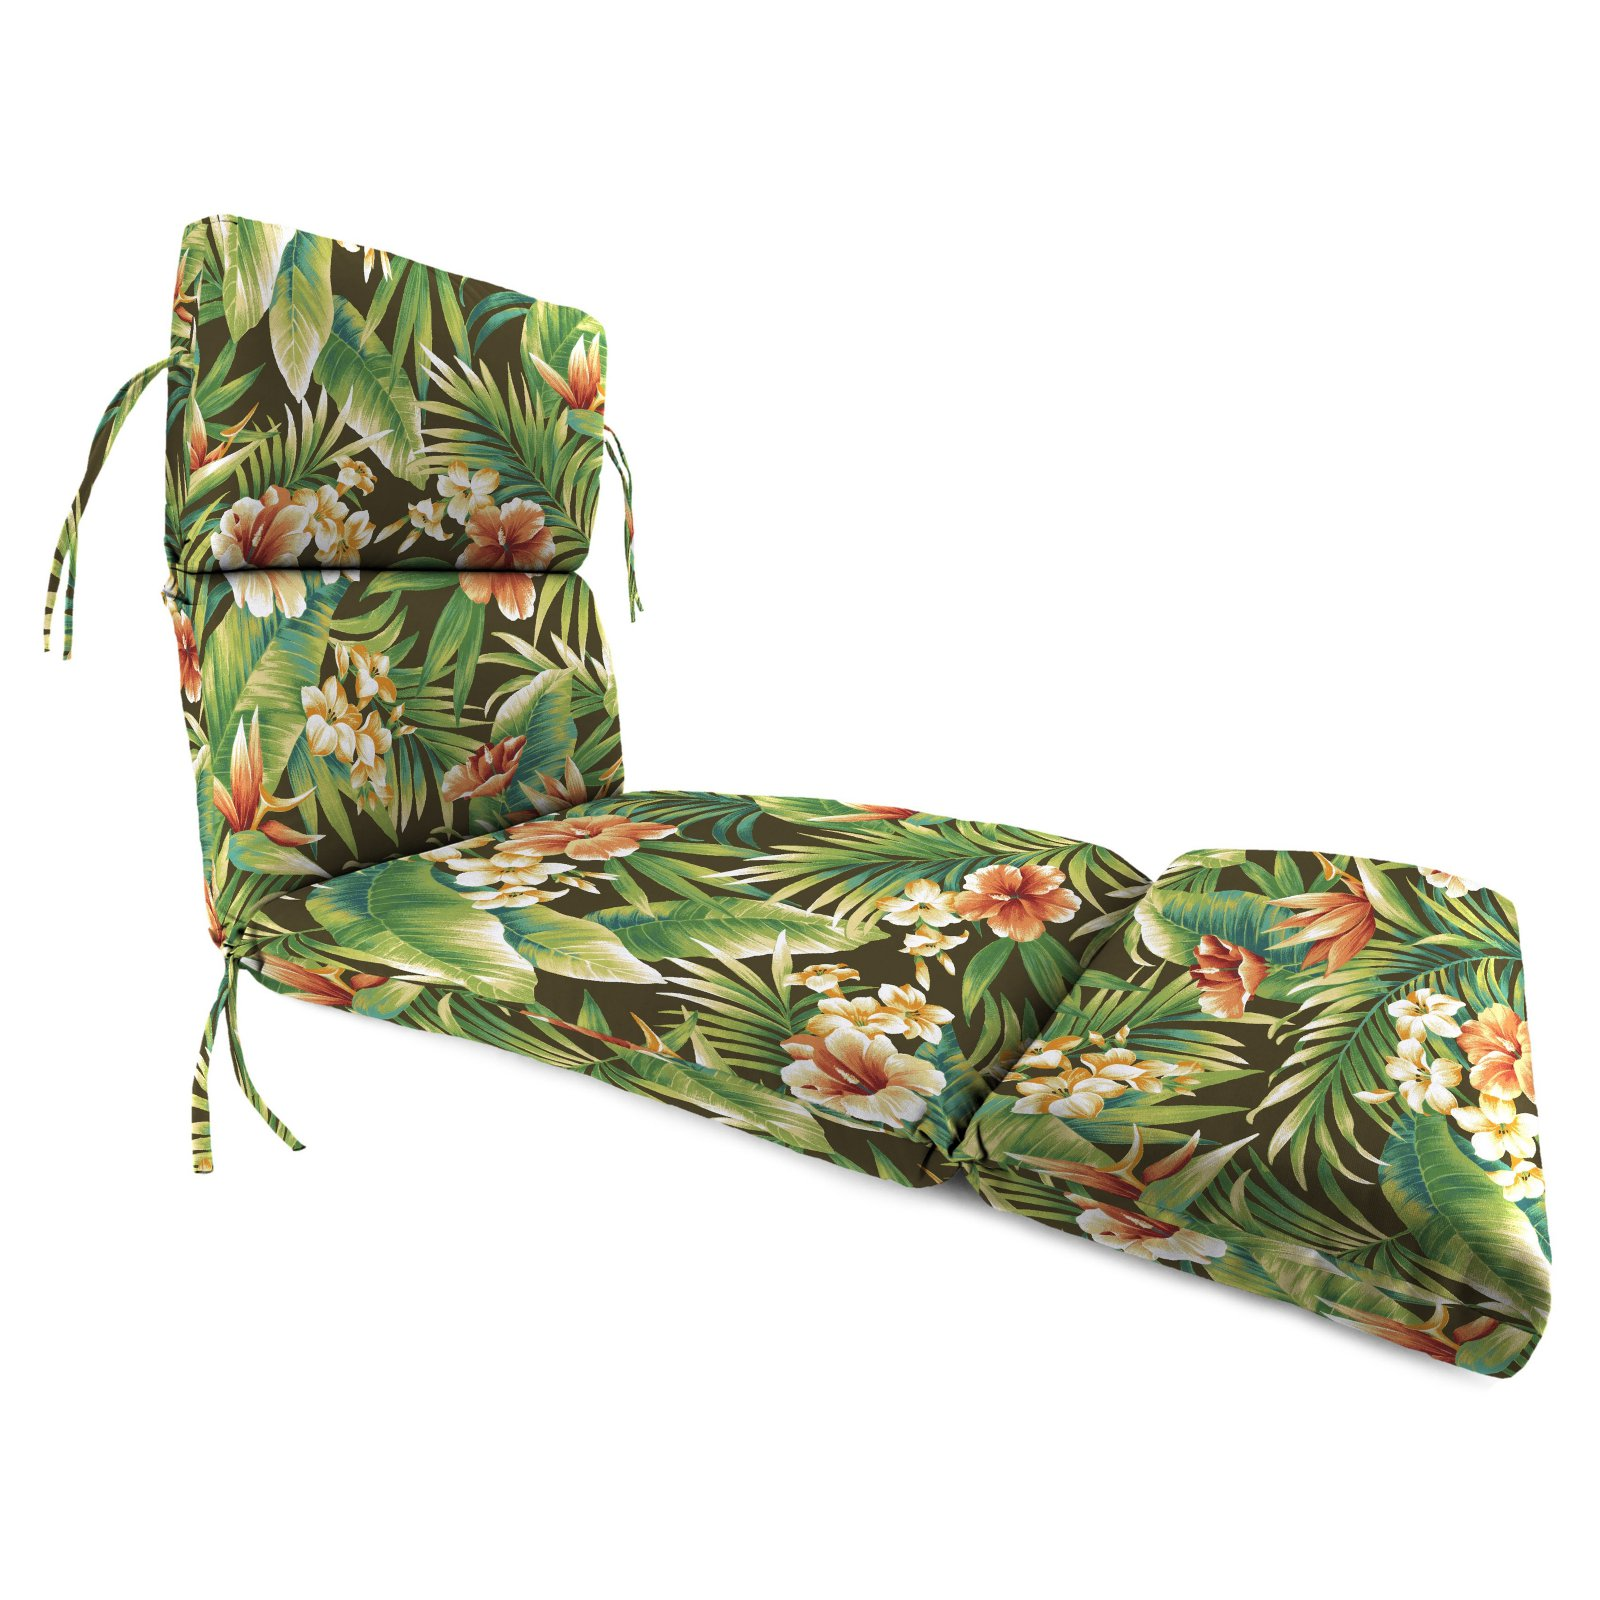 Jordan Manufacturing 74 in. French Edge Outdoor Cypress Chaise Lounge Cushion